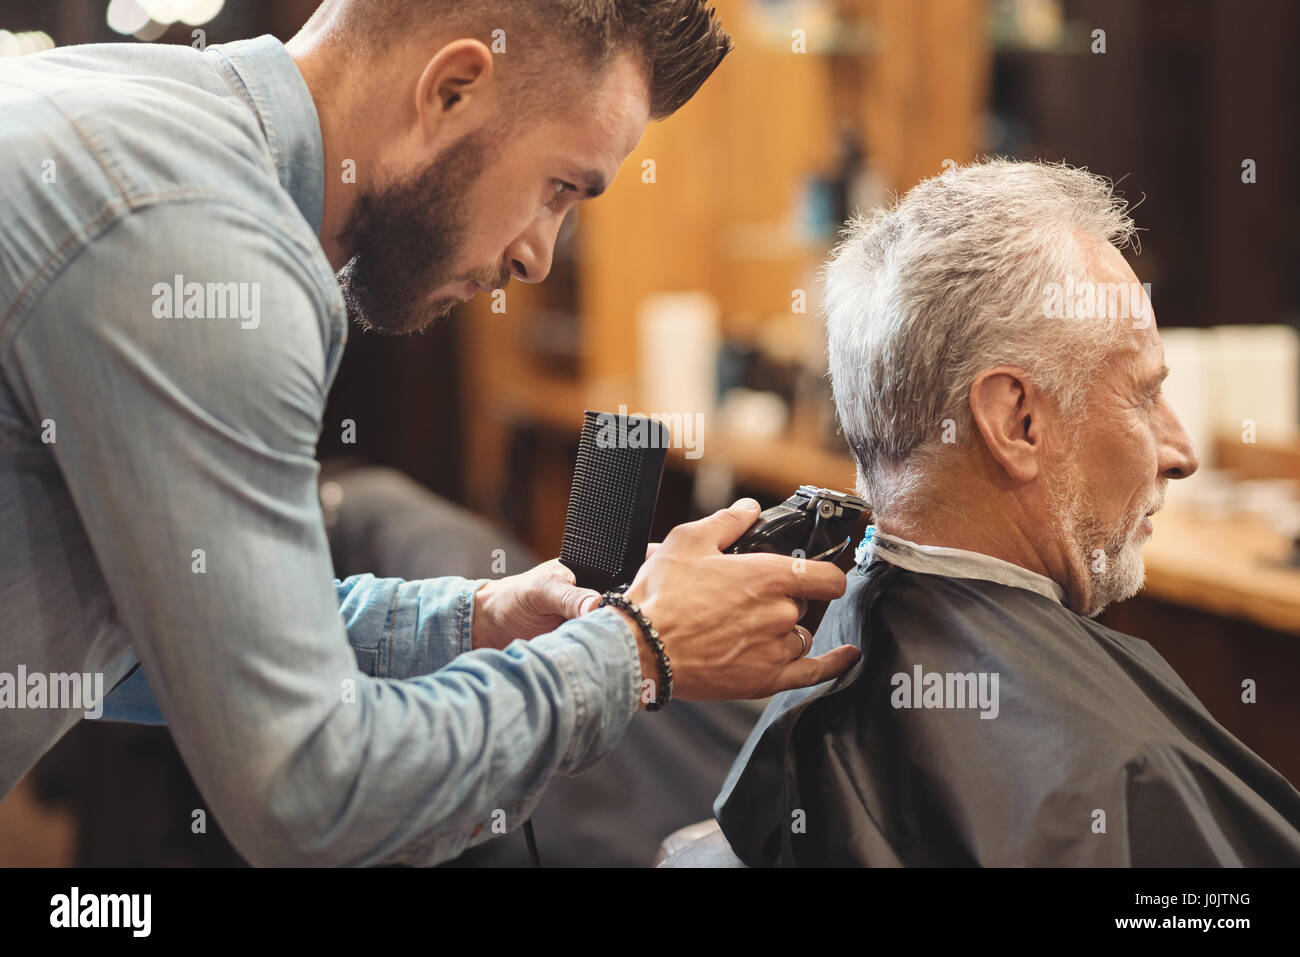 Handsome barber designing haircut of the aging man in barbershop - Stock Image